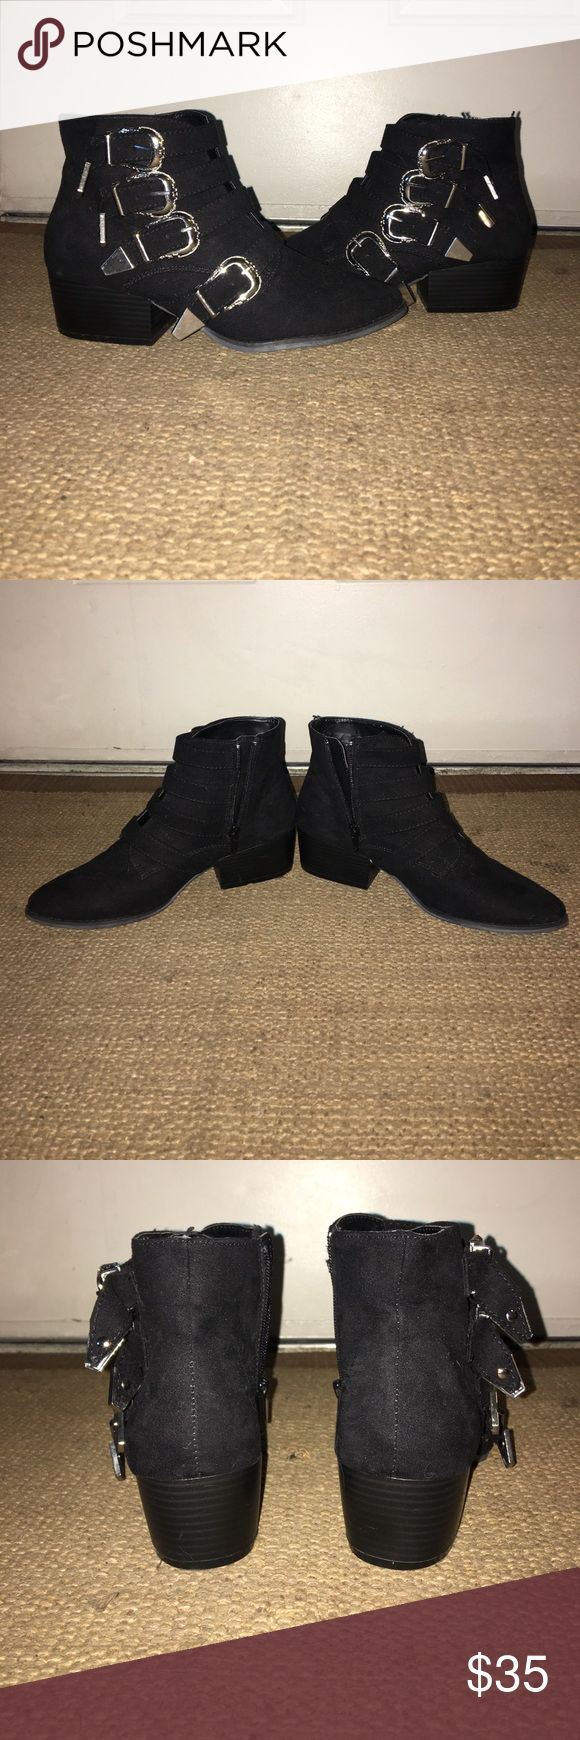 Forever 21 Multi Buckle Ankle Boot Forever 21 Multi Buckle Ankle Boot Black Suede size 8. Worn once for an interview. Minor scuffing at the inner heel. Practically new, comes from a smoke free home! No trades and no low ball offers please! Forever 21 Shoes Ankle Boots & Booties